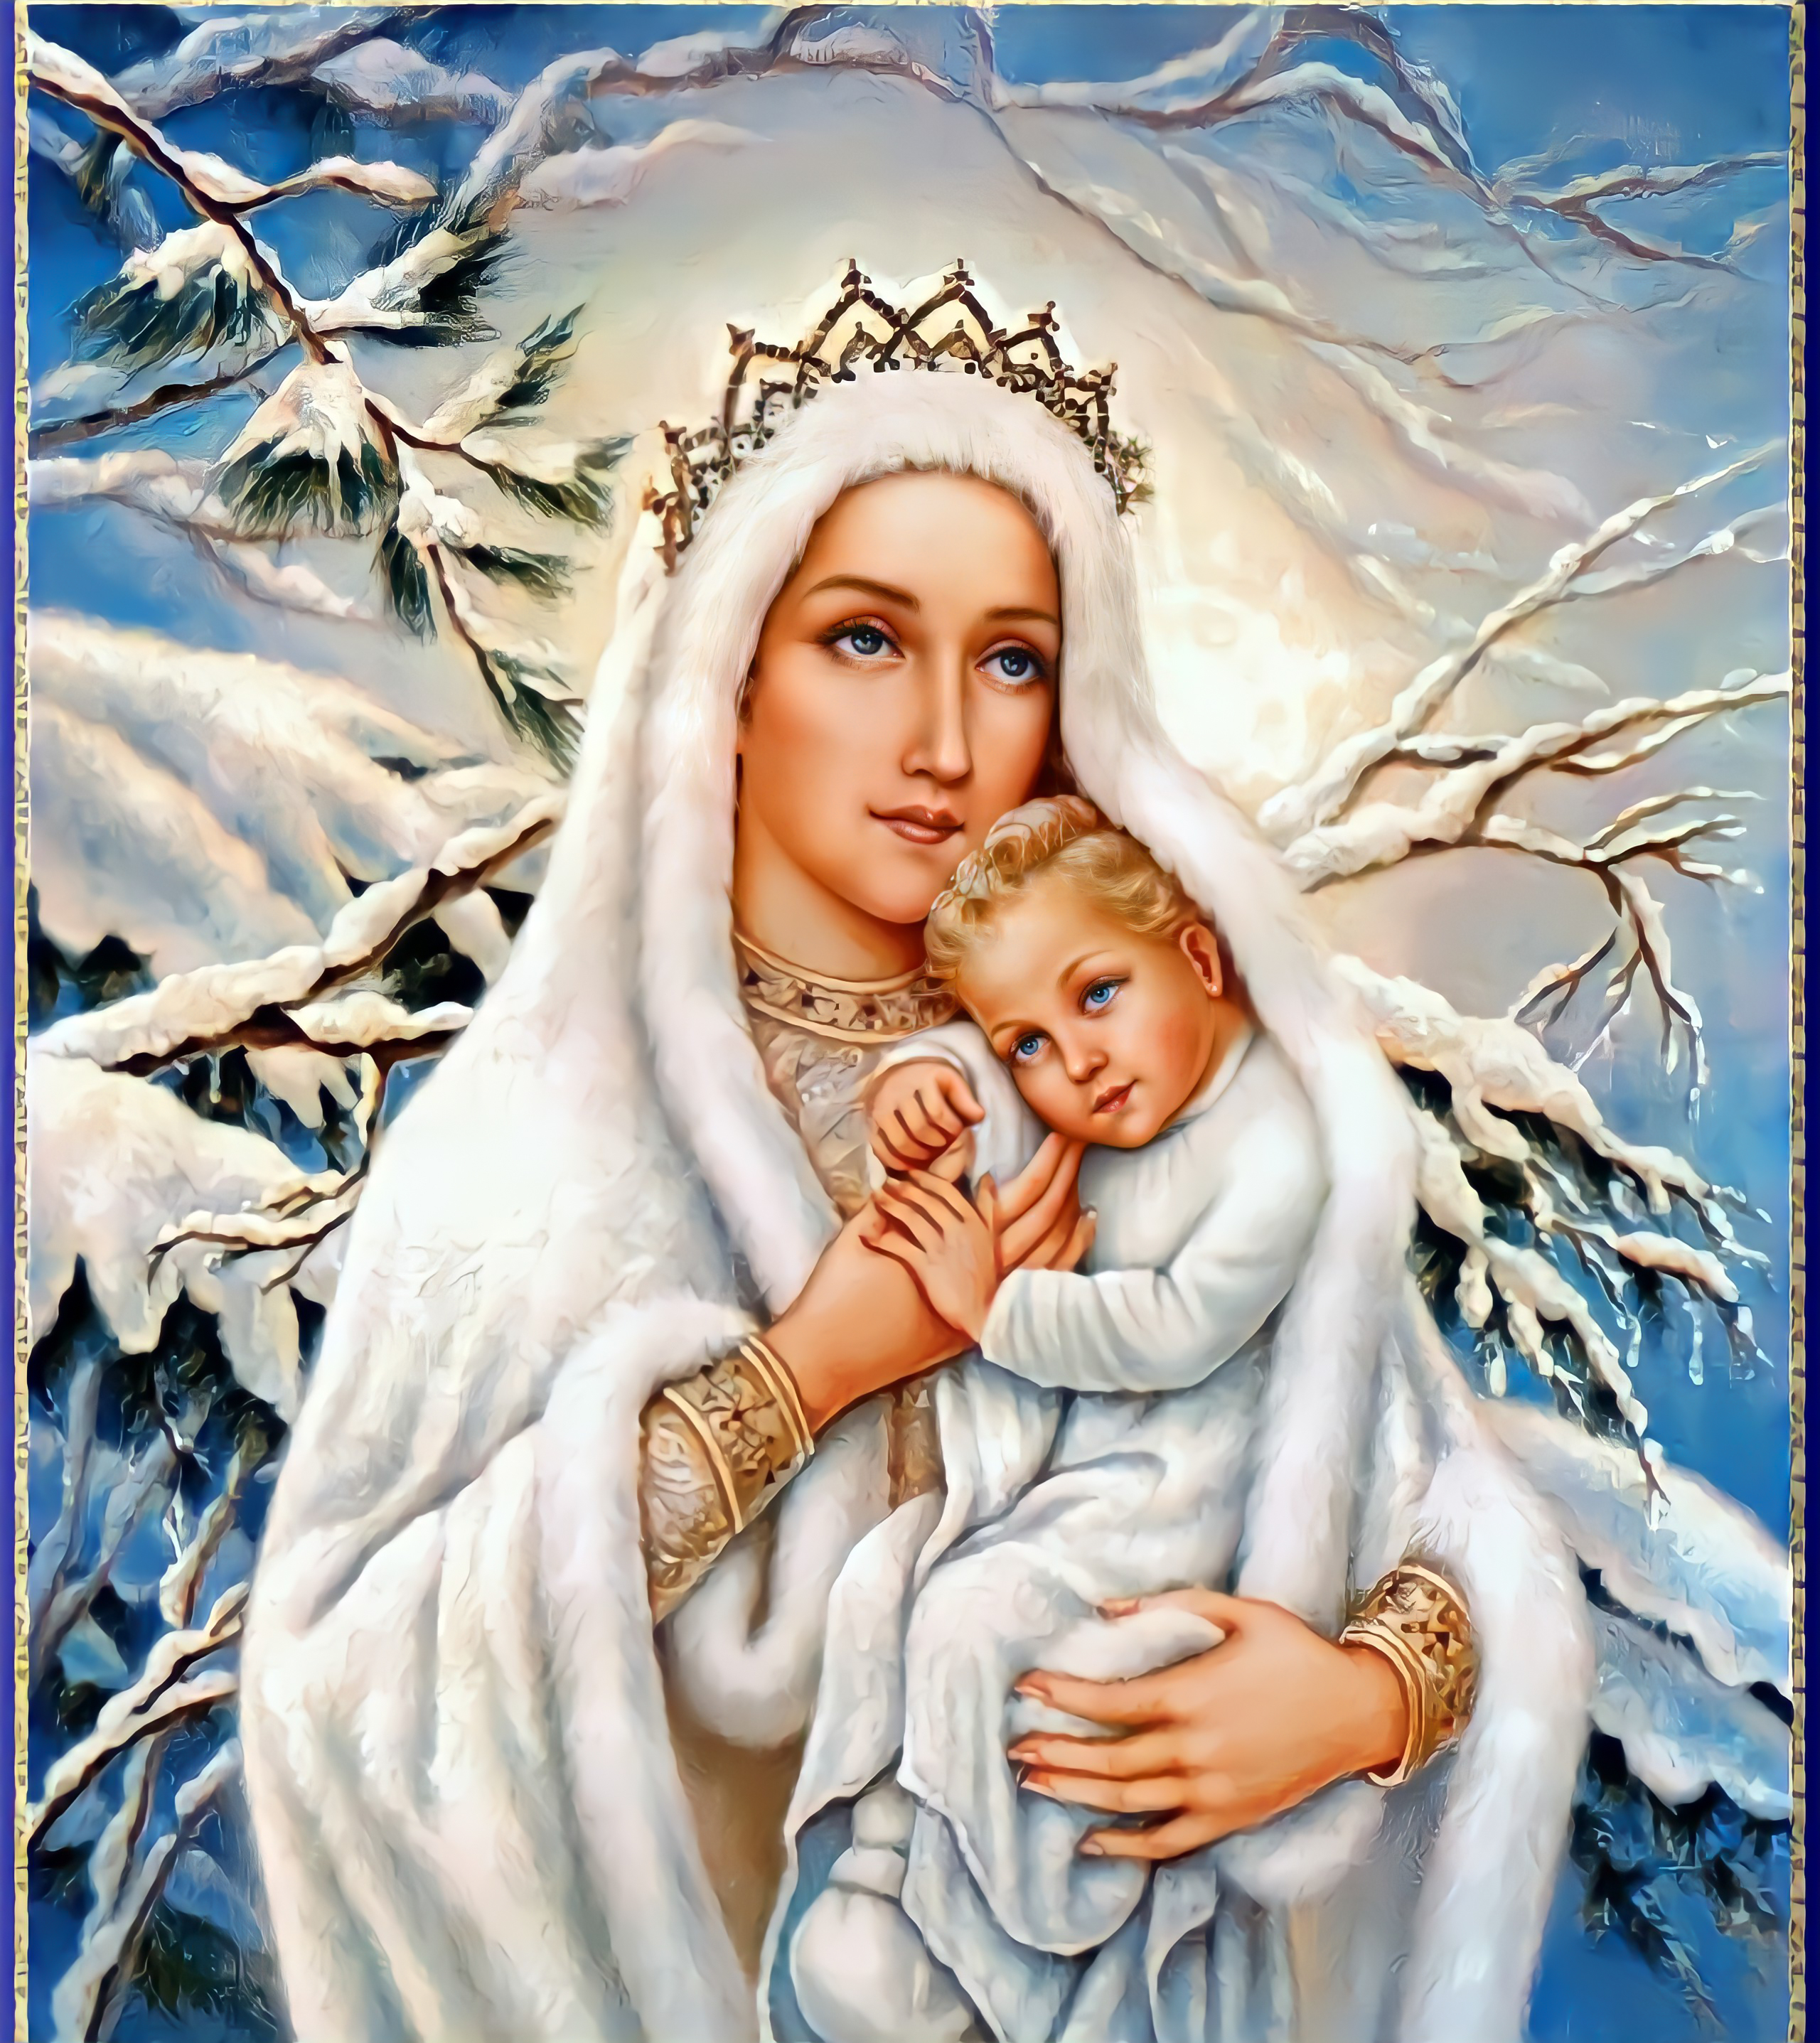 Our Lady of Snows, August 5